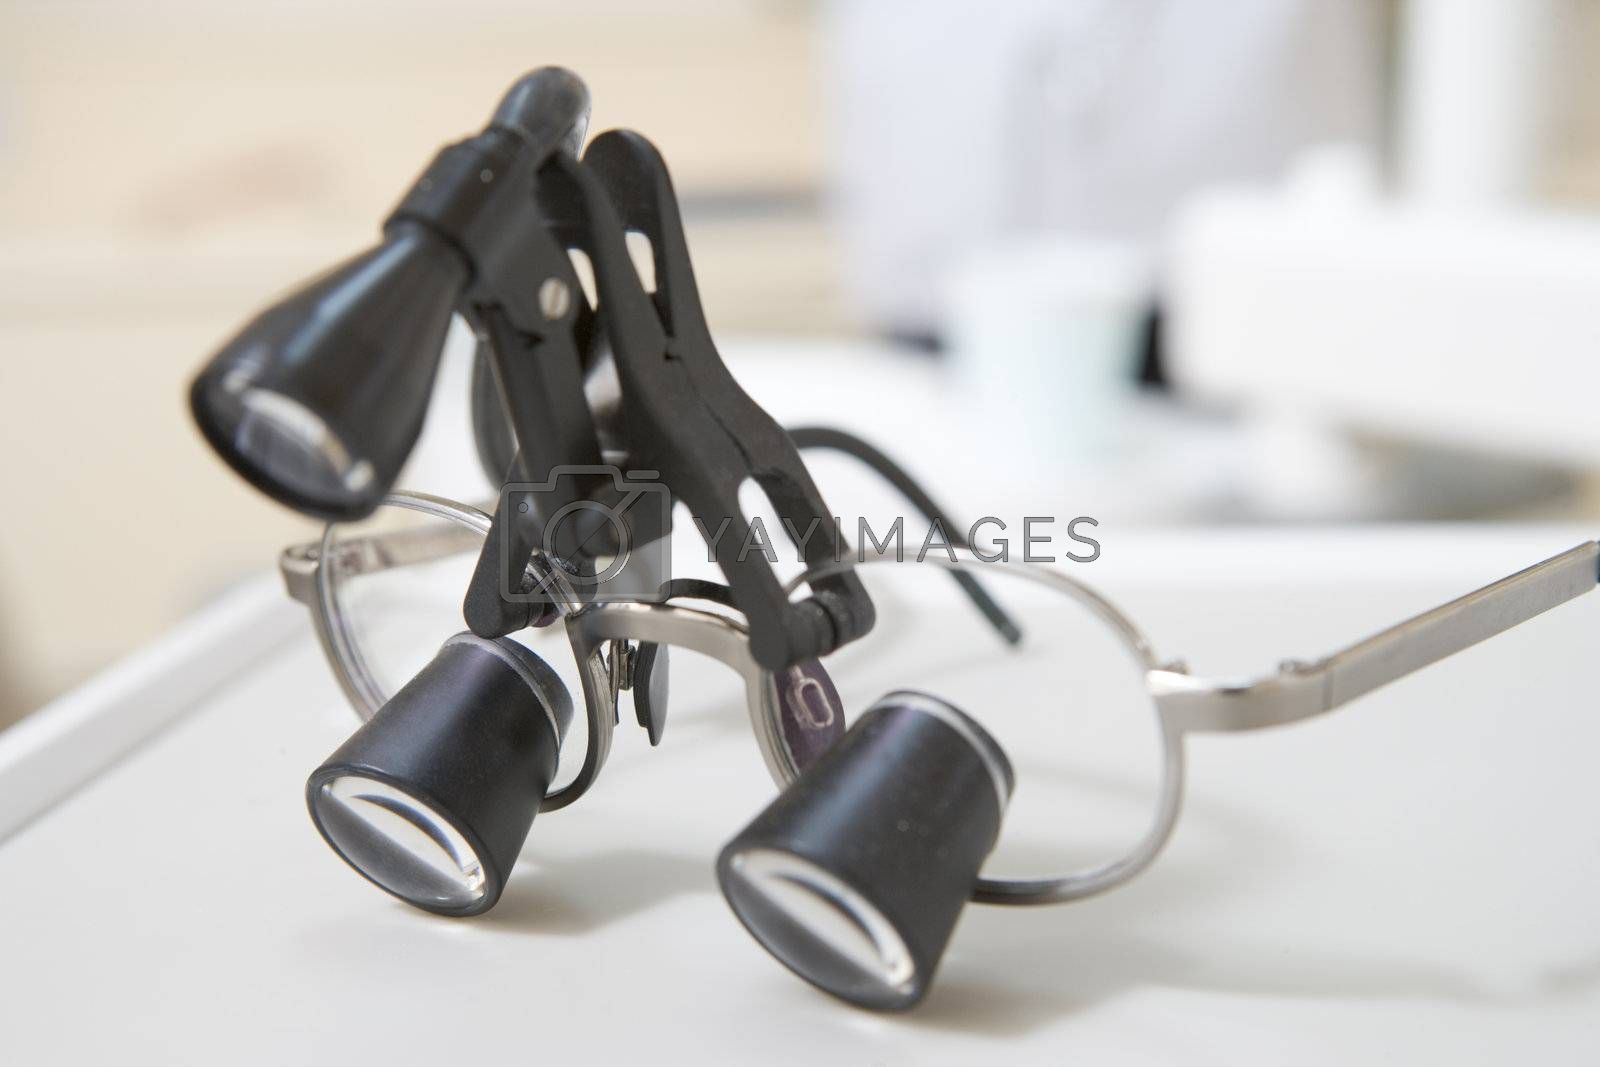 Dentist's eye piece with light